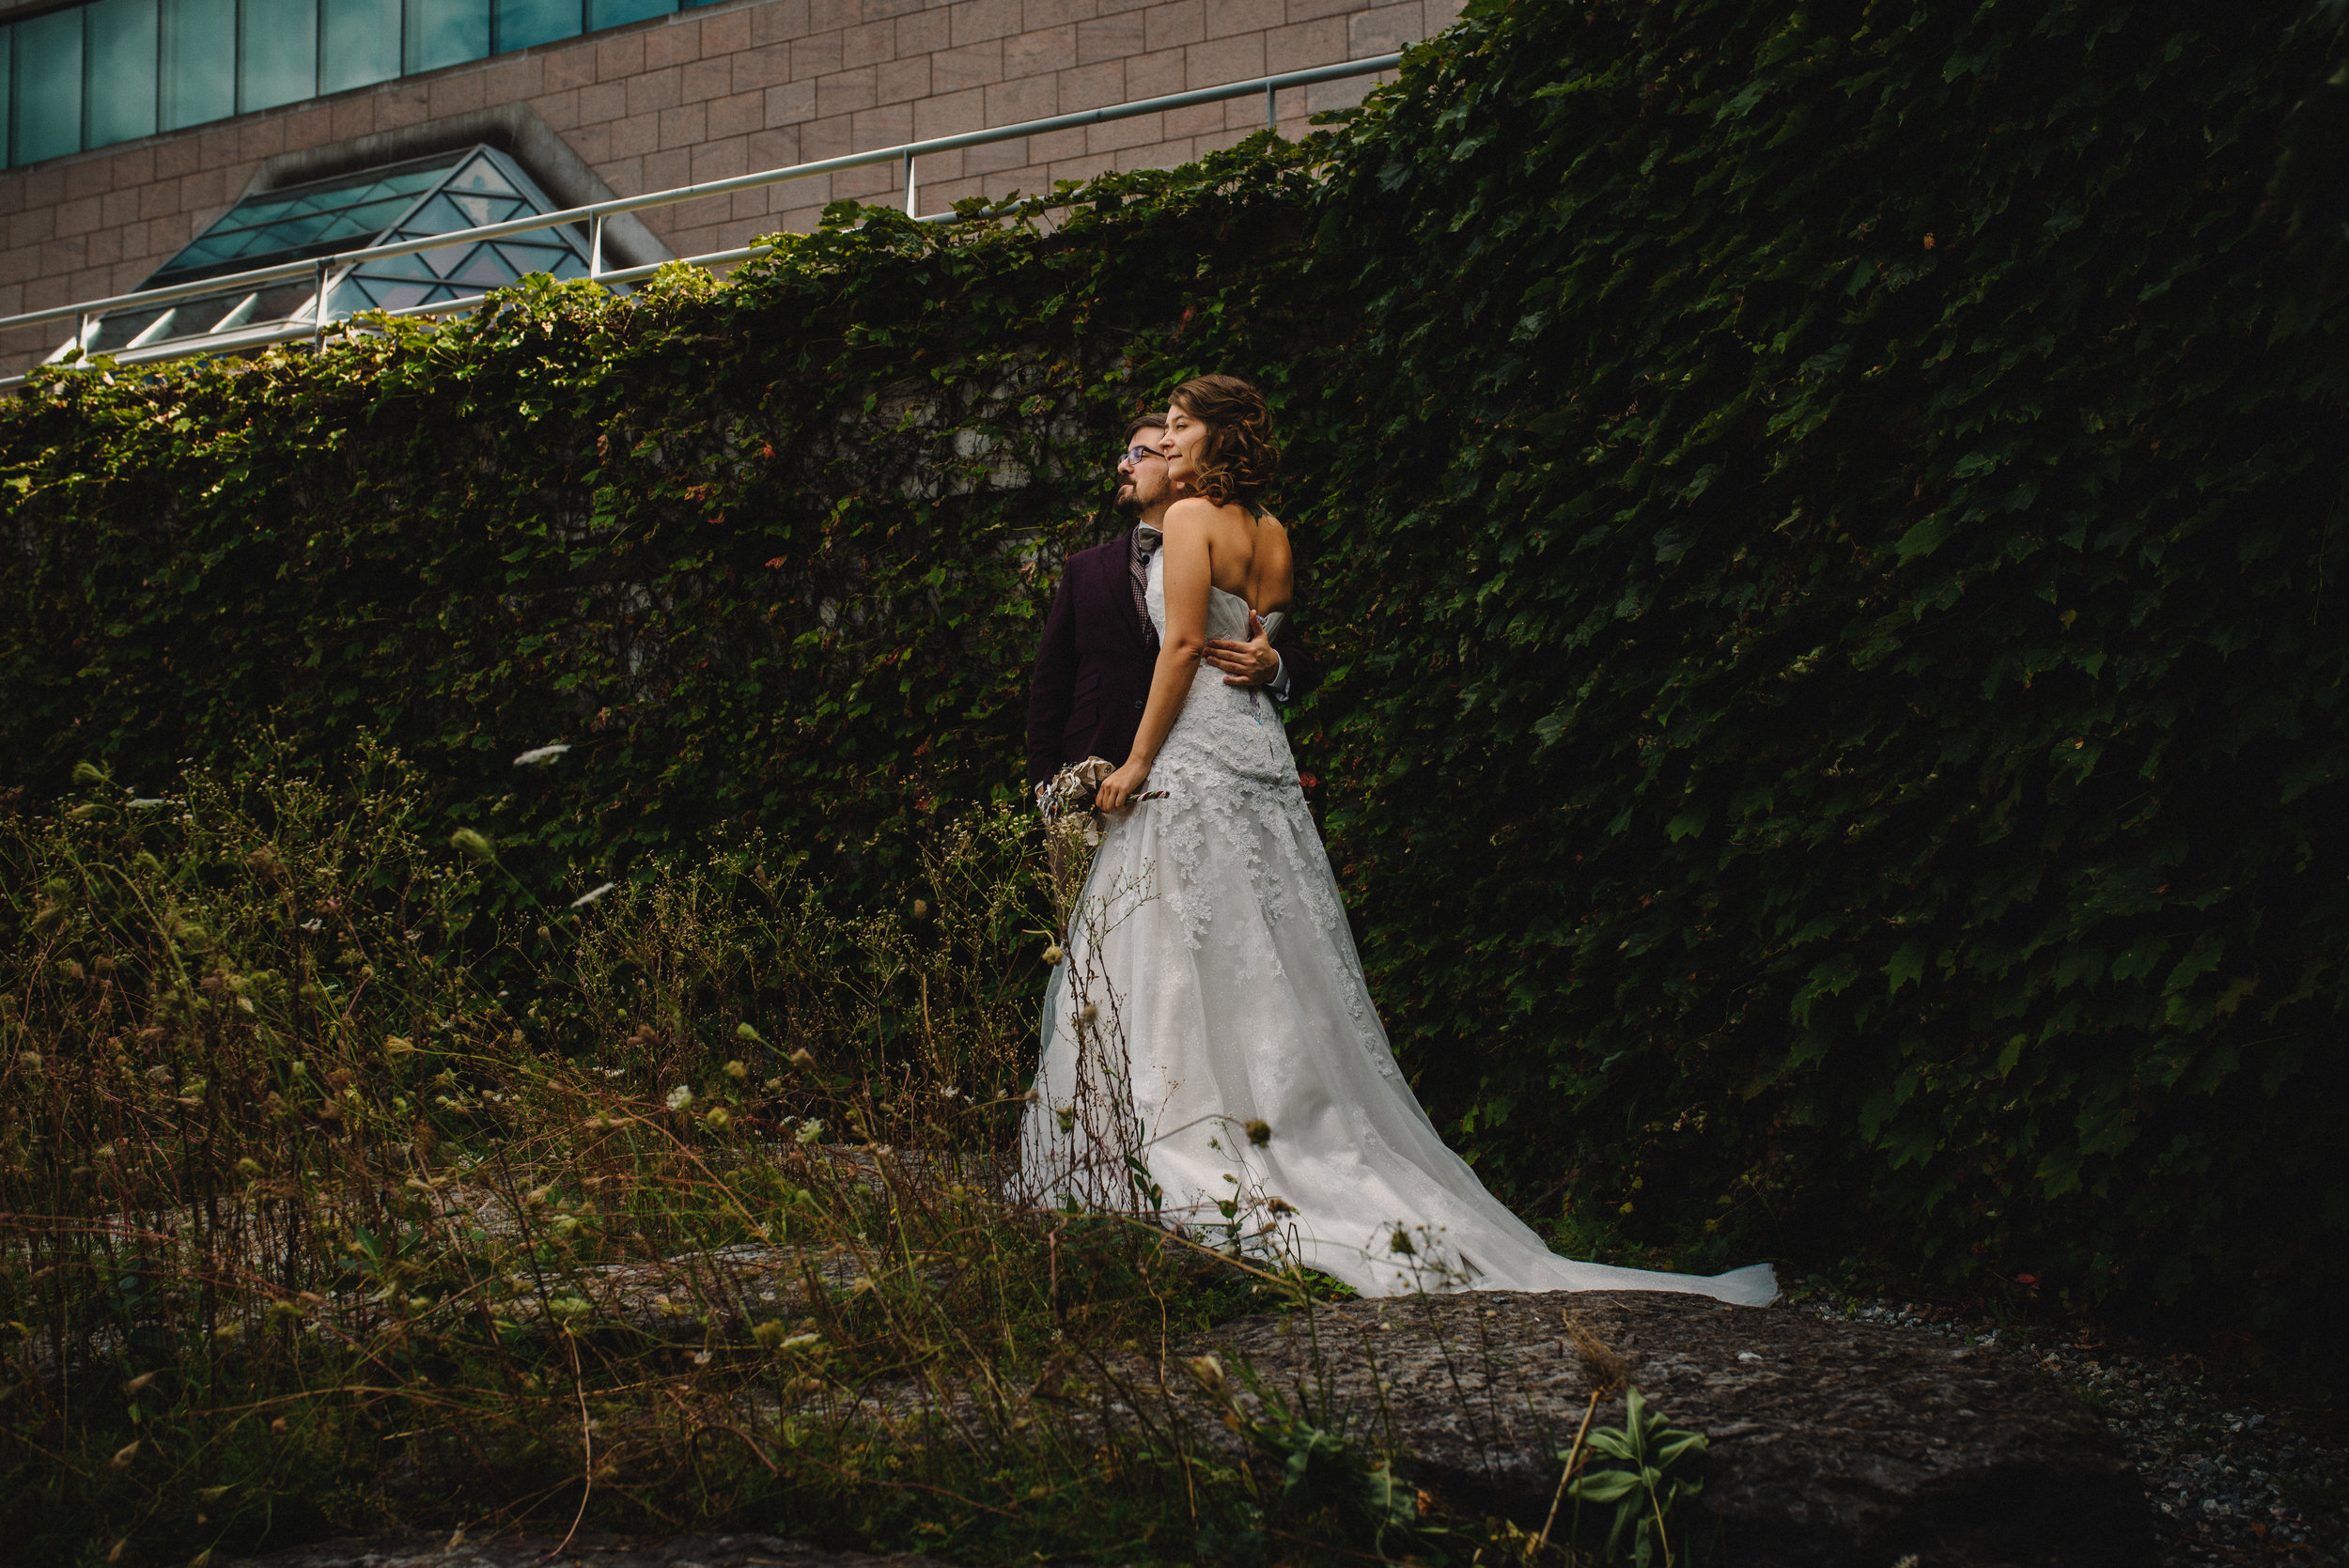 Mocha Tree Studios Ottawa Wedding and Engagement Photographer and Videographer Dark Moody Intimate Authentic Modern Romantic Cinematic Best Candid Ottawa Rowing Club 22